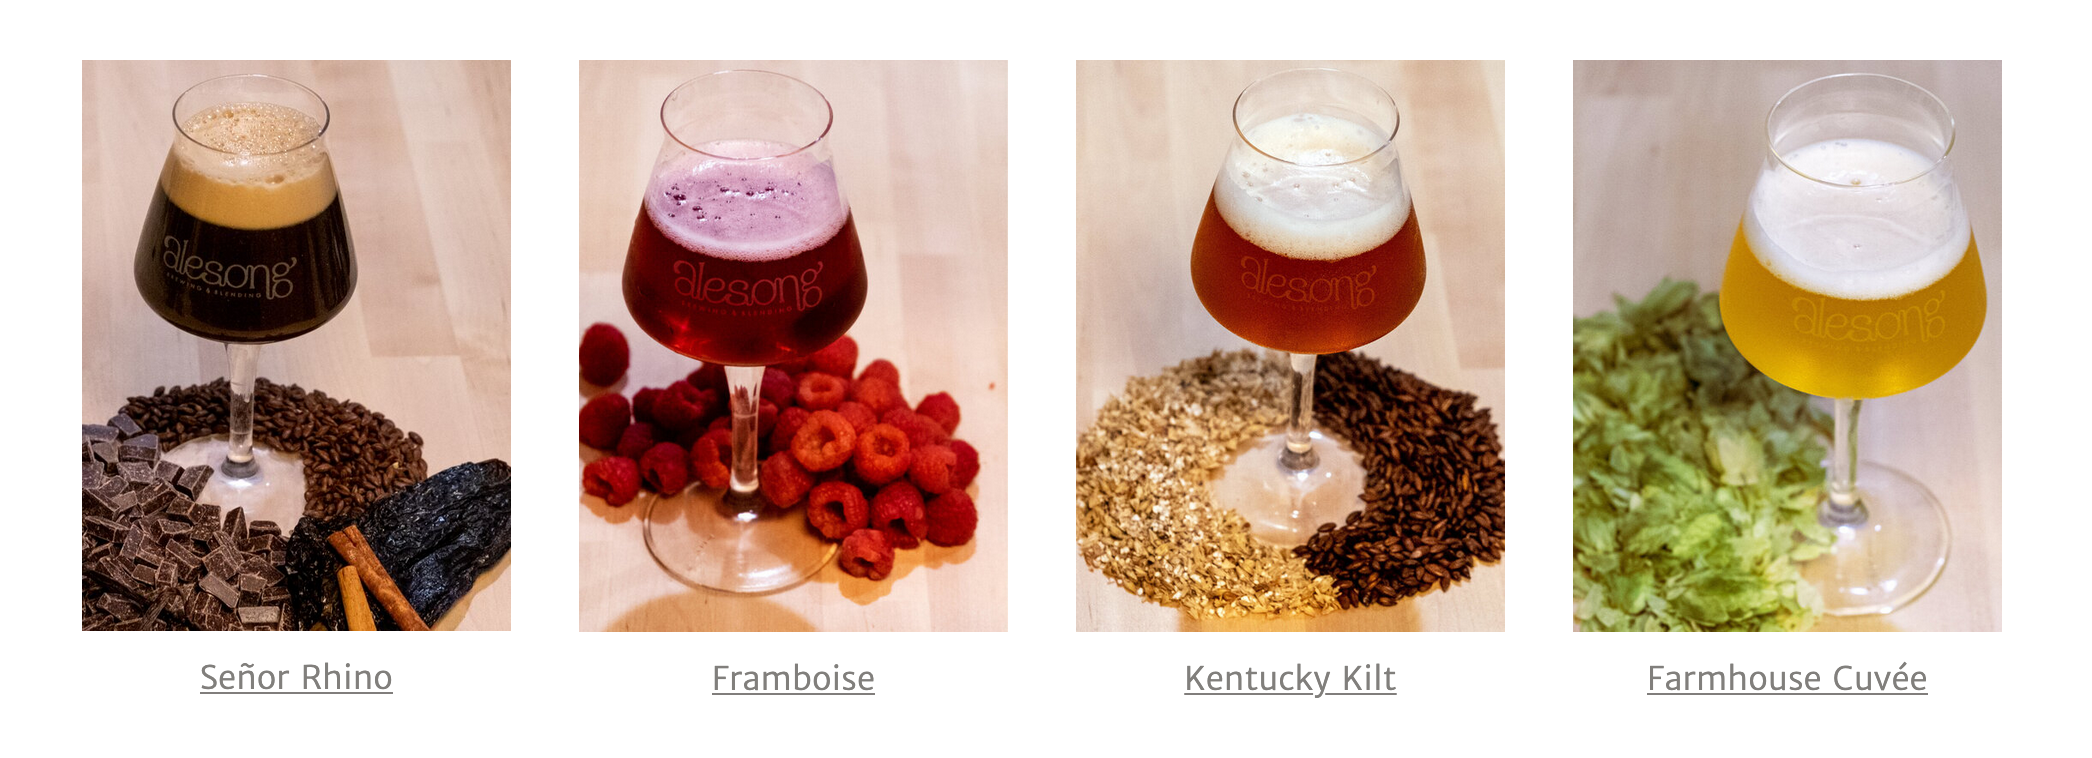 Alesong Brewing & Blending March 2020 Beer Releases - Señor Rhino, Framboise, Kentucky Kilt, and Farmhouse Cuvée